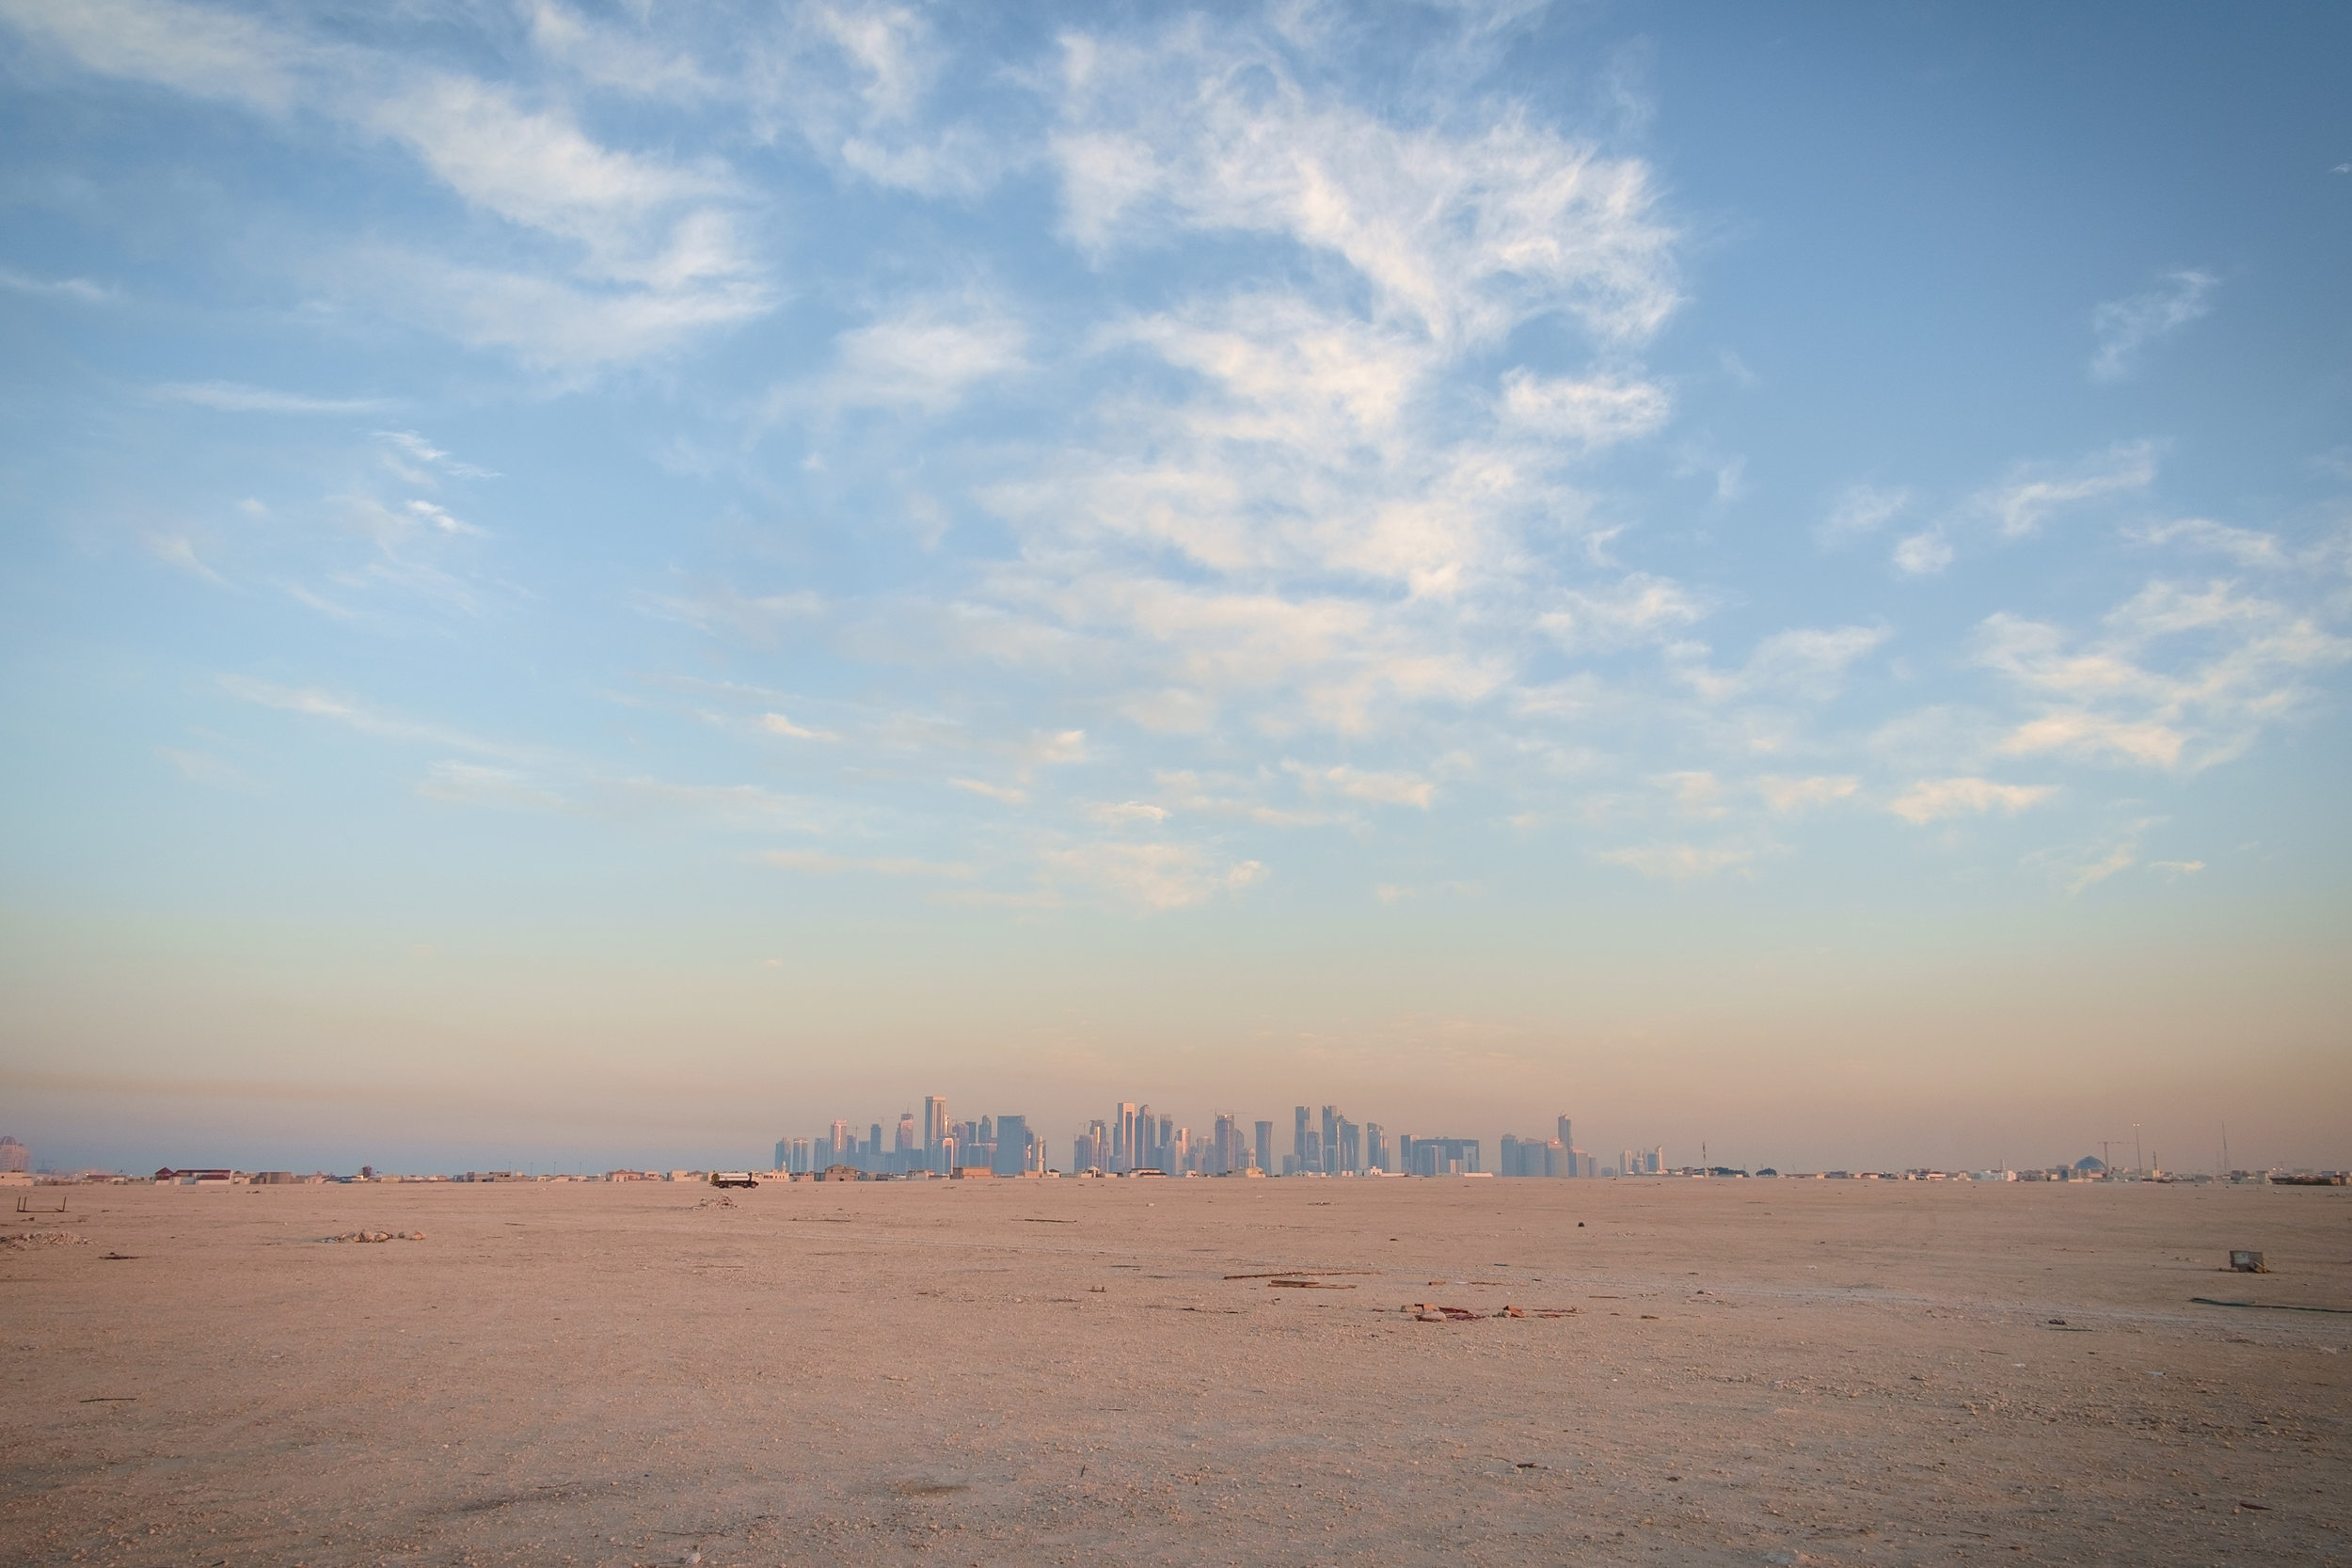 West Bay, Doha's business district and iconic skyline, is seen in the distance.